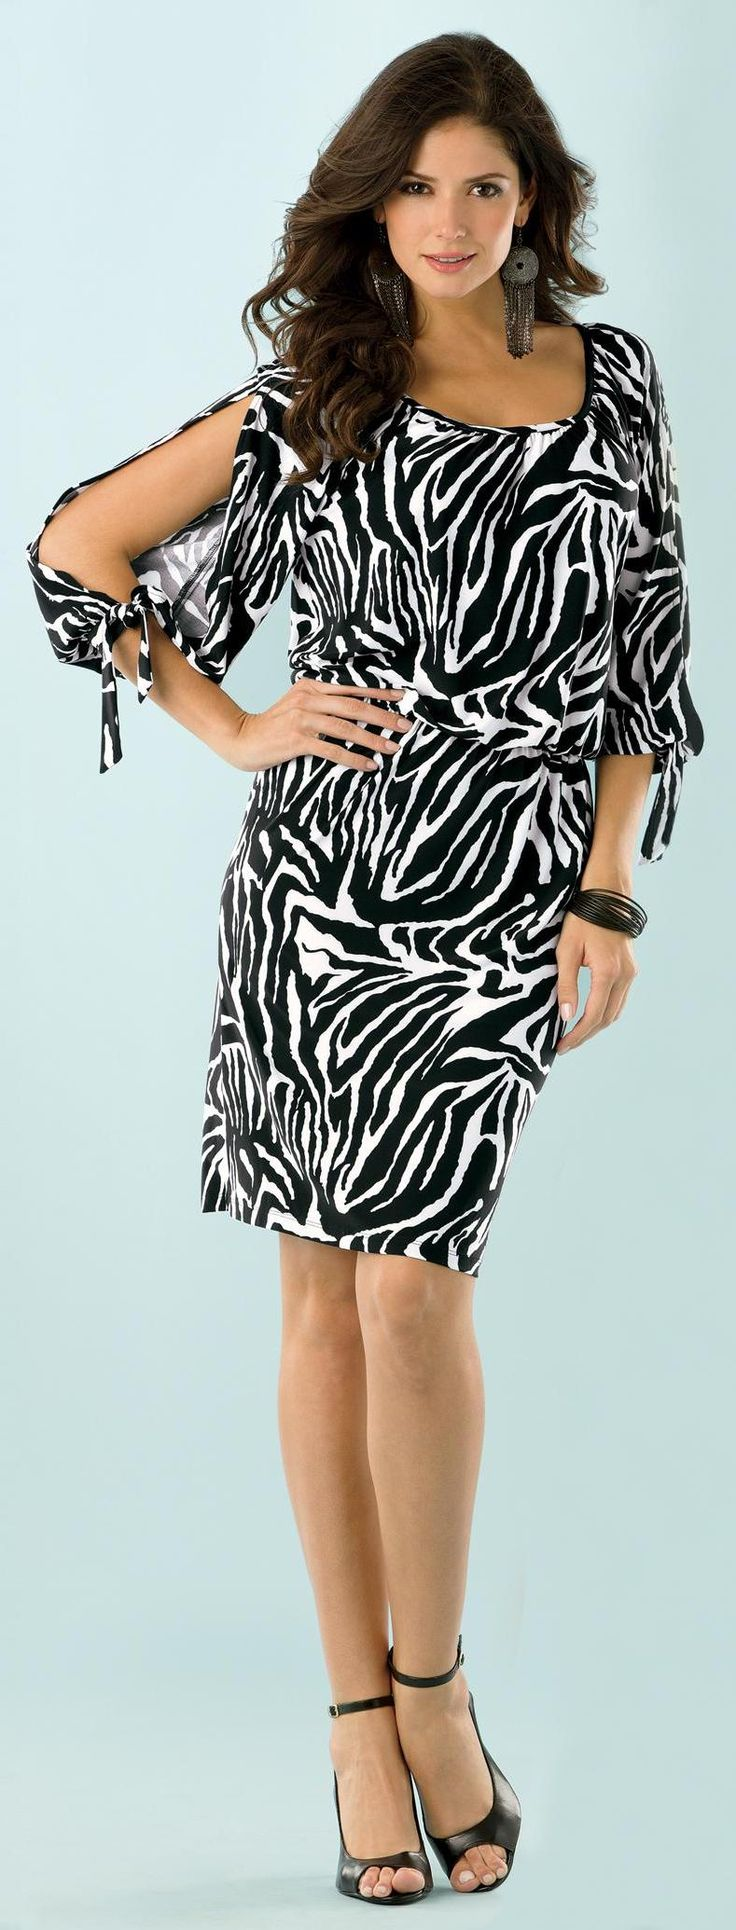 metrostyle.com split-sleeve blouson dress